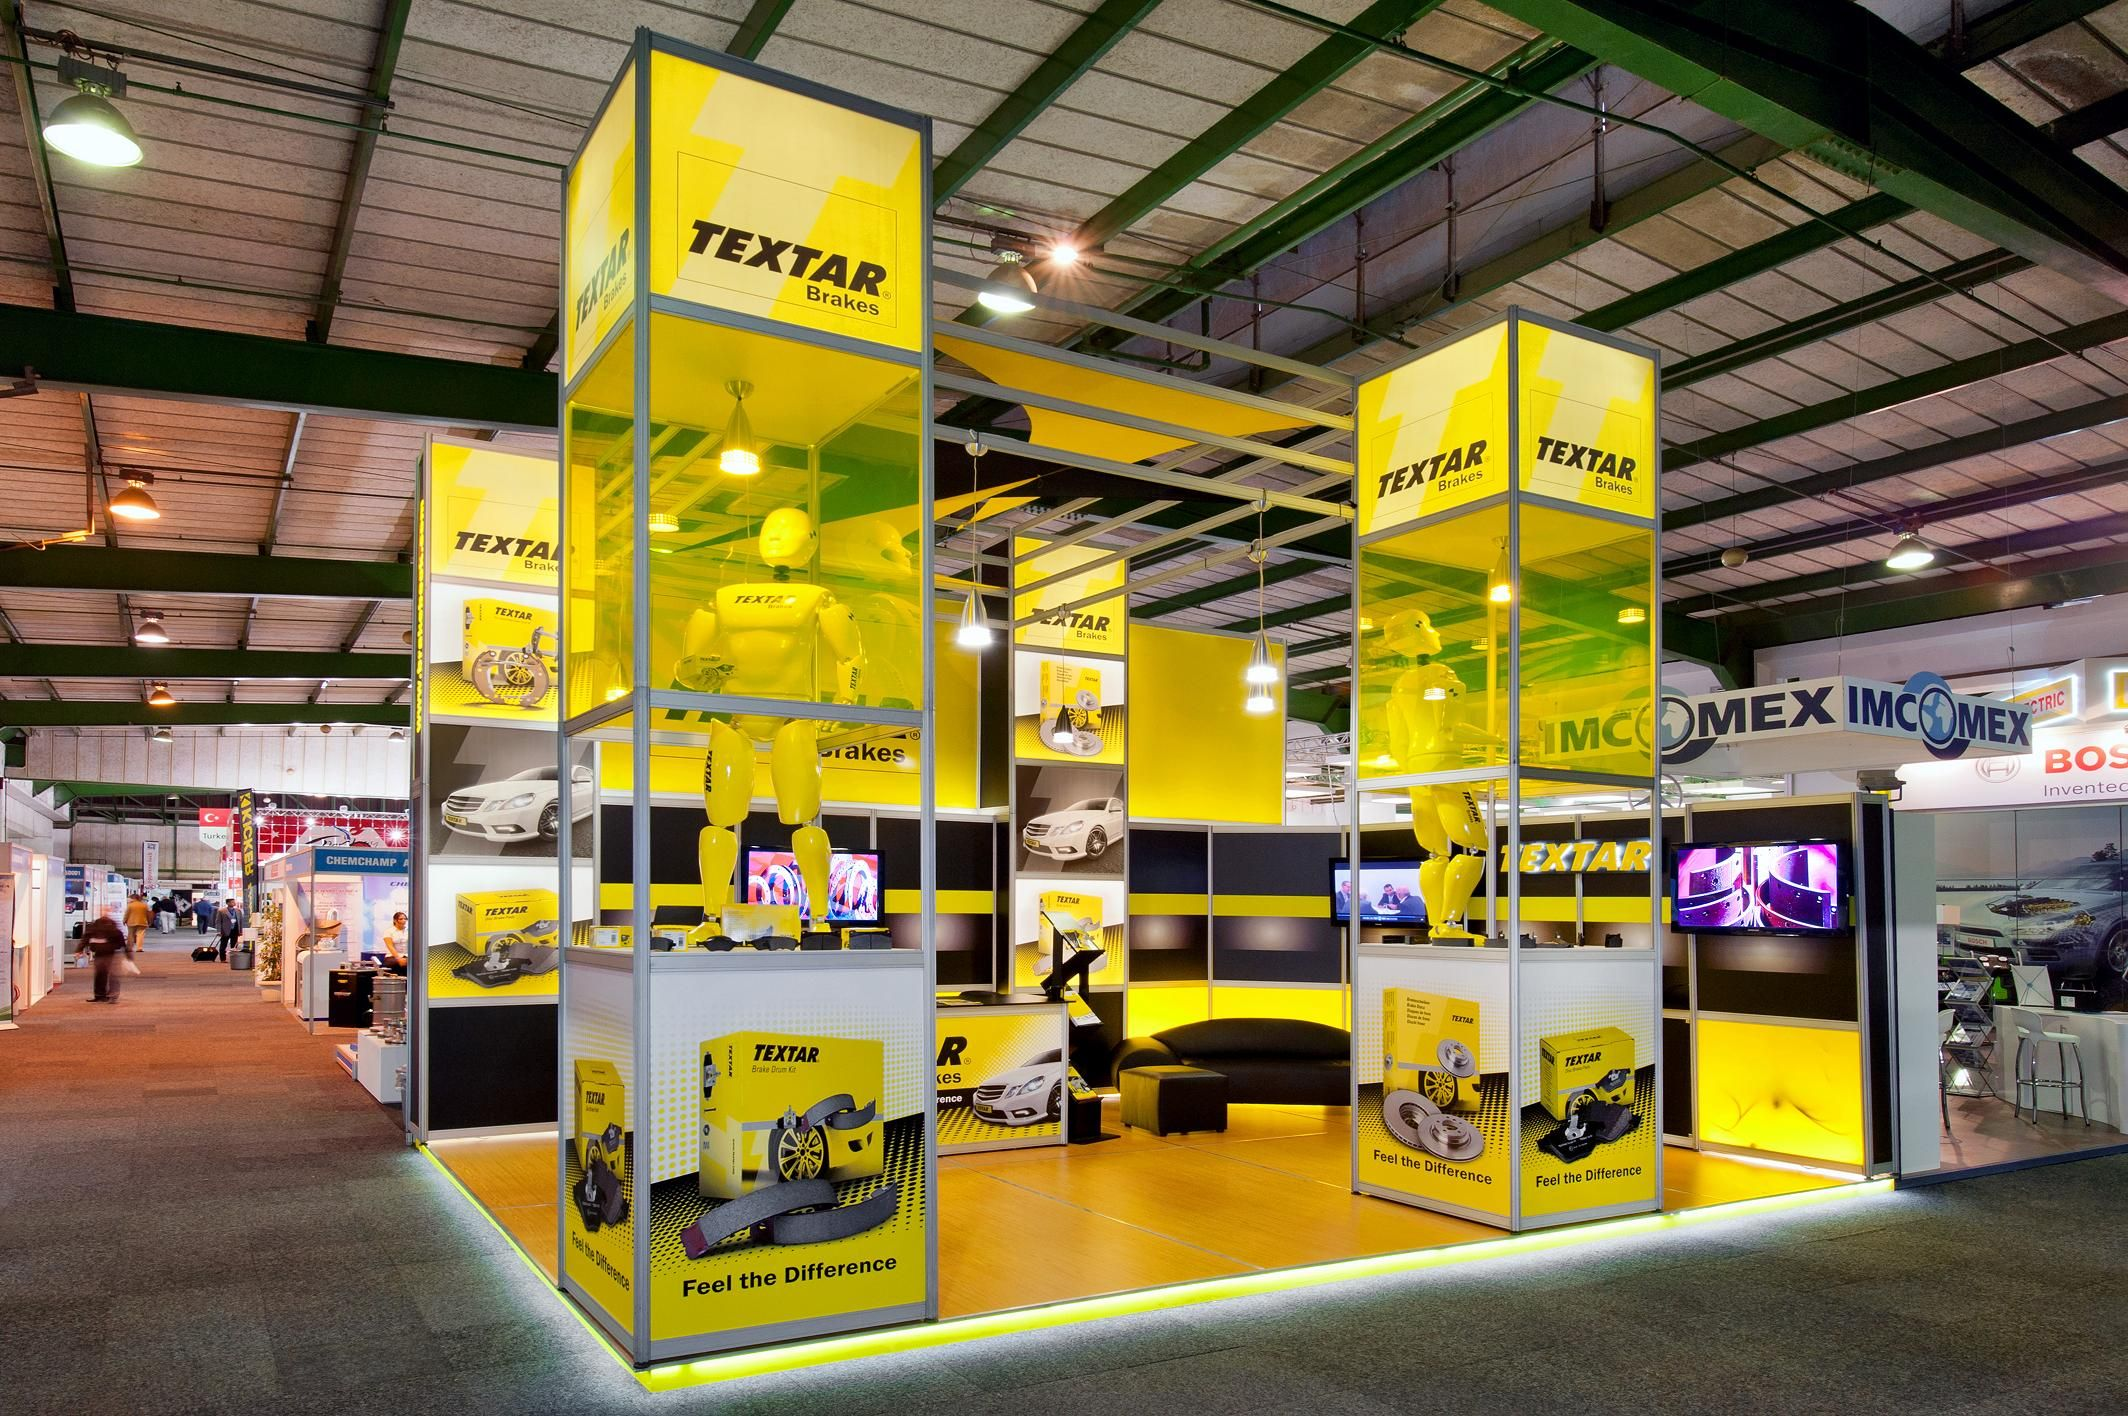 Exhibition Stand Builders Johannesburg : Photo of stands sho craft exhibitions shopfitting pty